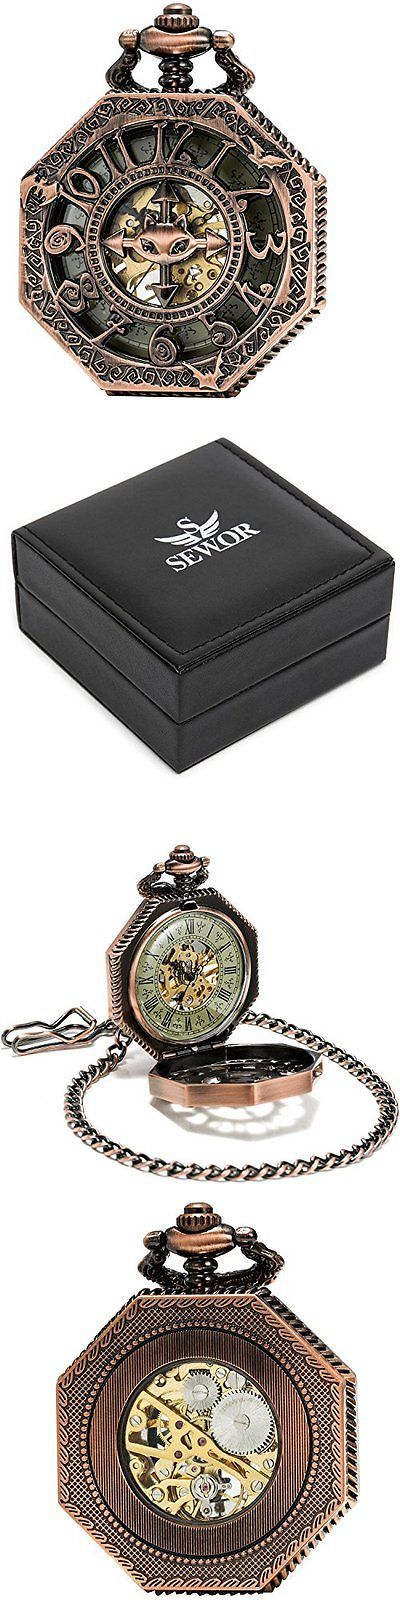 Antique 3940: Sewor Octagon Red Copper Skeleton Pocket Watch Bat Style Steampunk Mechanical... -> BUY IT NOW ONLY: $34.2 on eBay!